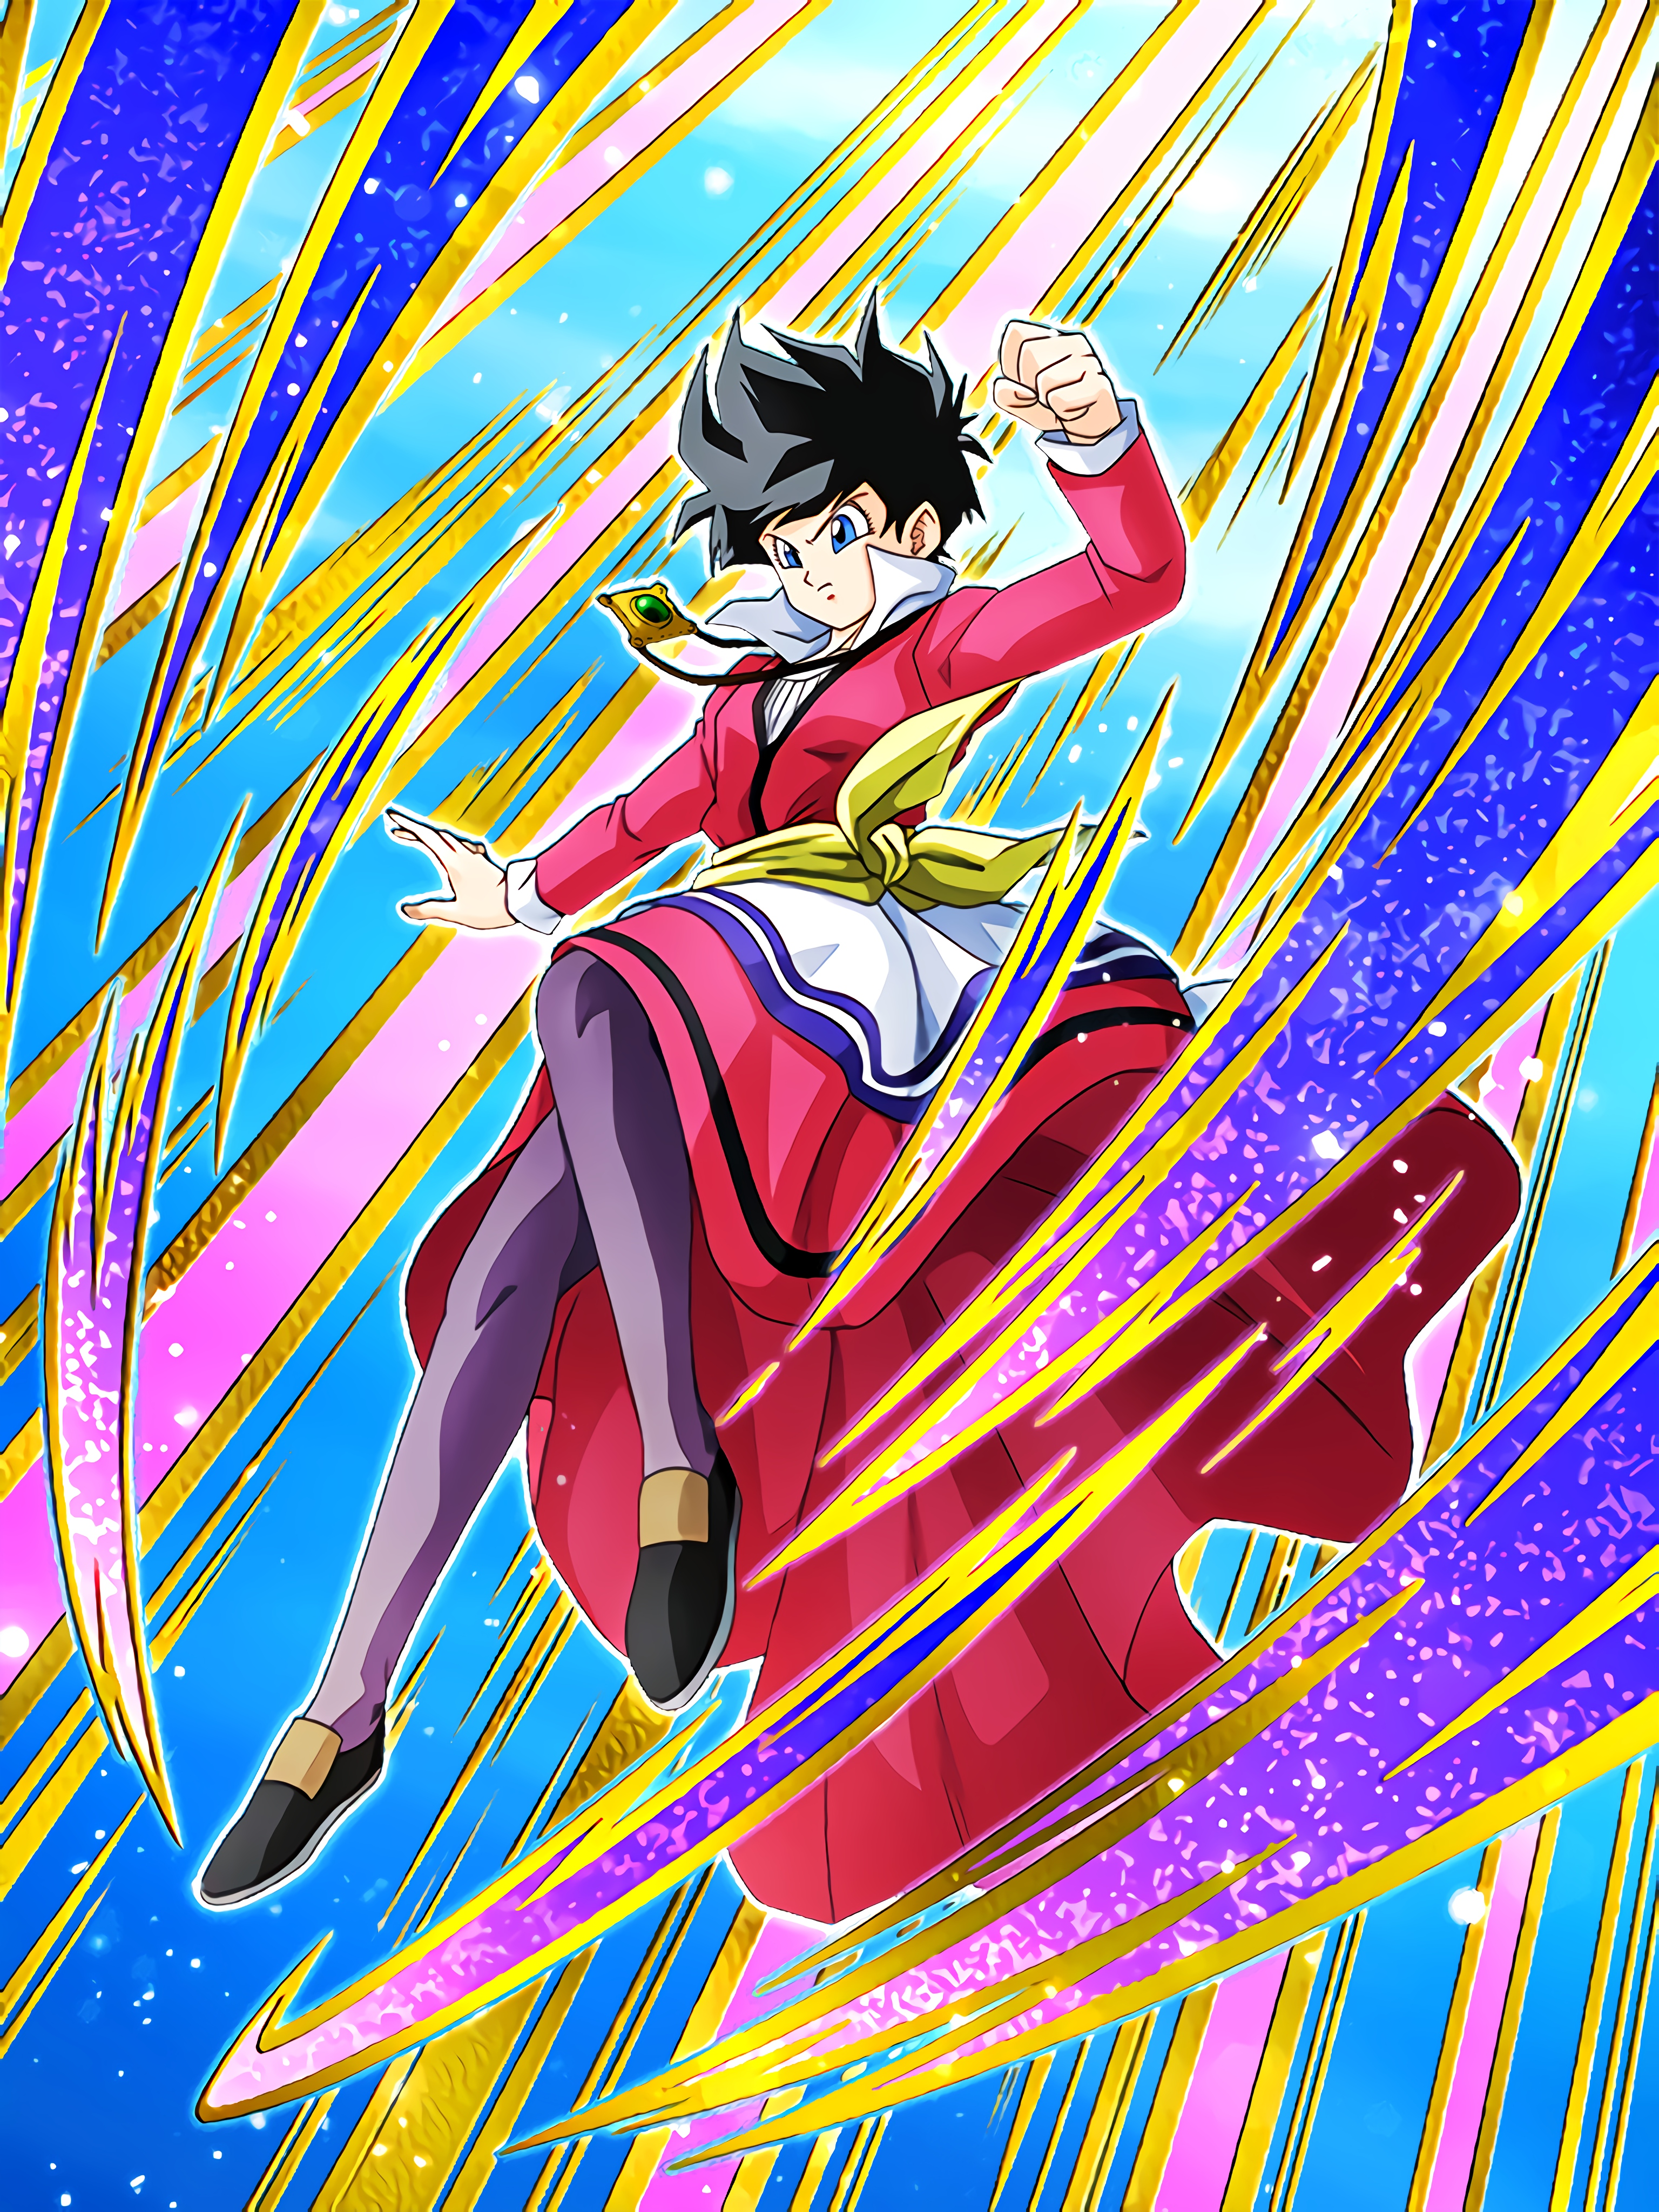 Indomitable Frontal Breakthrough Videl Art (Dragon Ball Z Dokkan Battle)